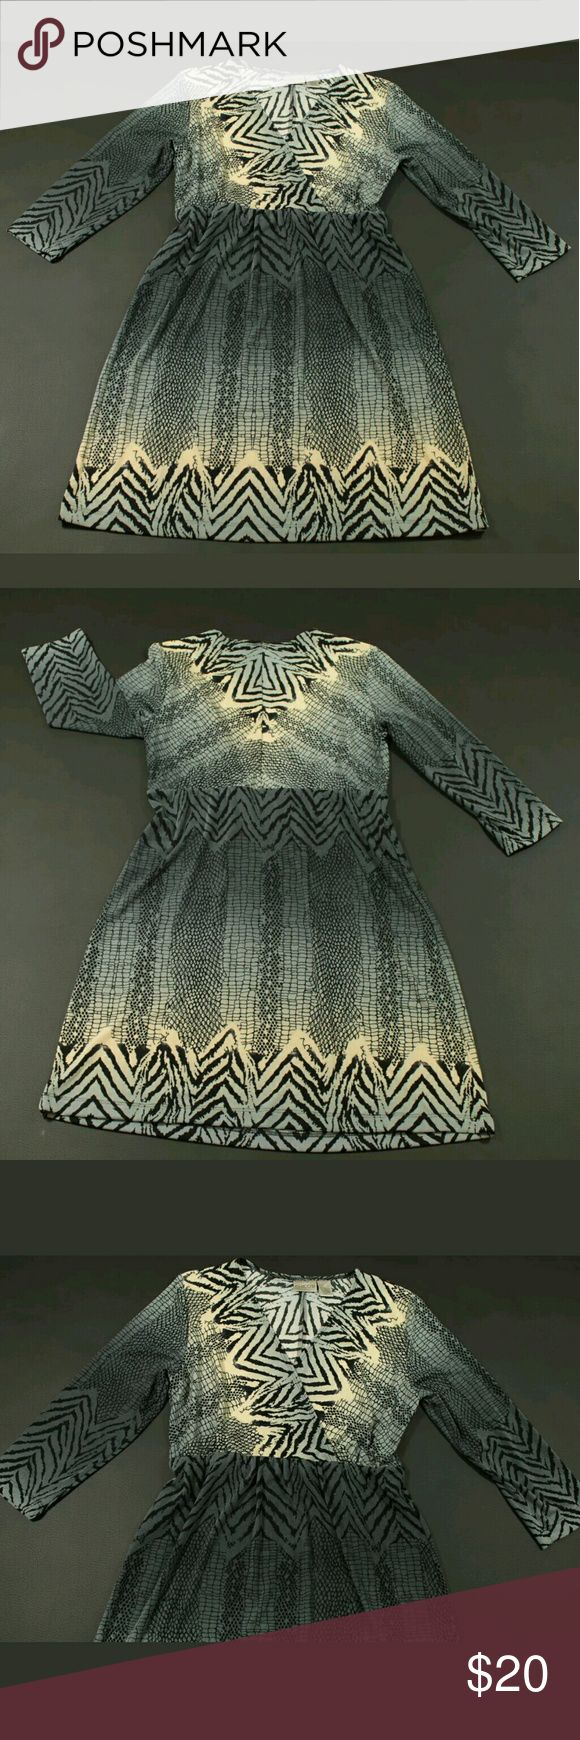 """Cache Long Sleeve Dress Womens Size 1 Animal Print Cache Dress Womens Size 1 Black Gray Ivory with Animal Print and Empire Waist Condition:  Great Pre-Owned Condition from clean pet/smoke free home. Material:  See Pics  Measurements:  Length: 35.5"""" Bust Pit to Pit: 18.5"""" Cache Dresses Long Sleeve"""